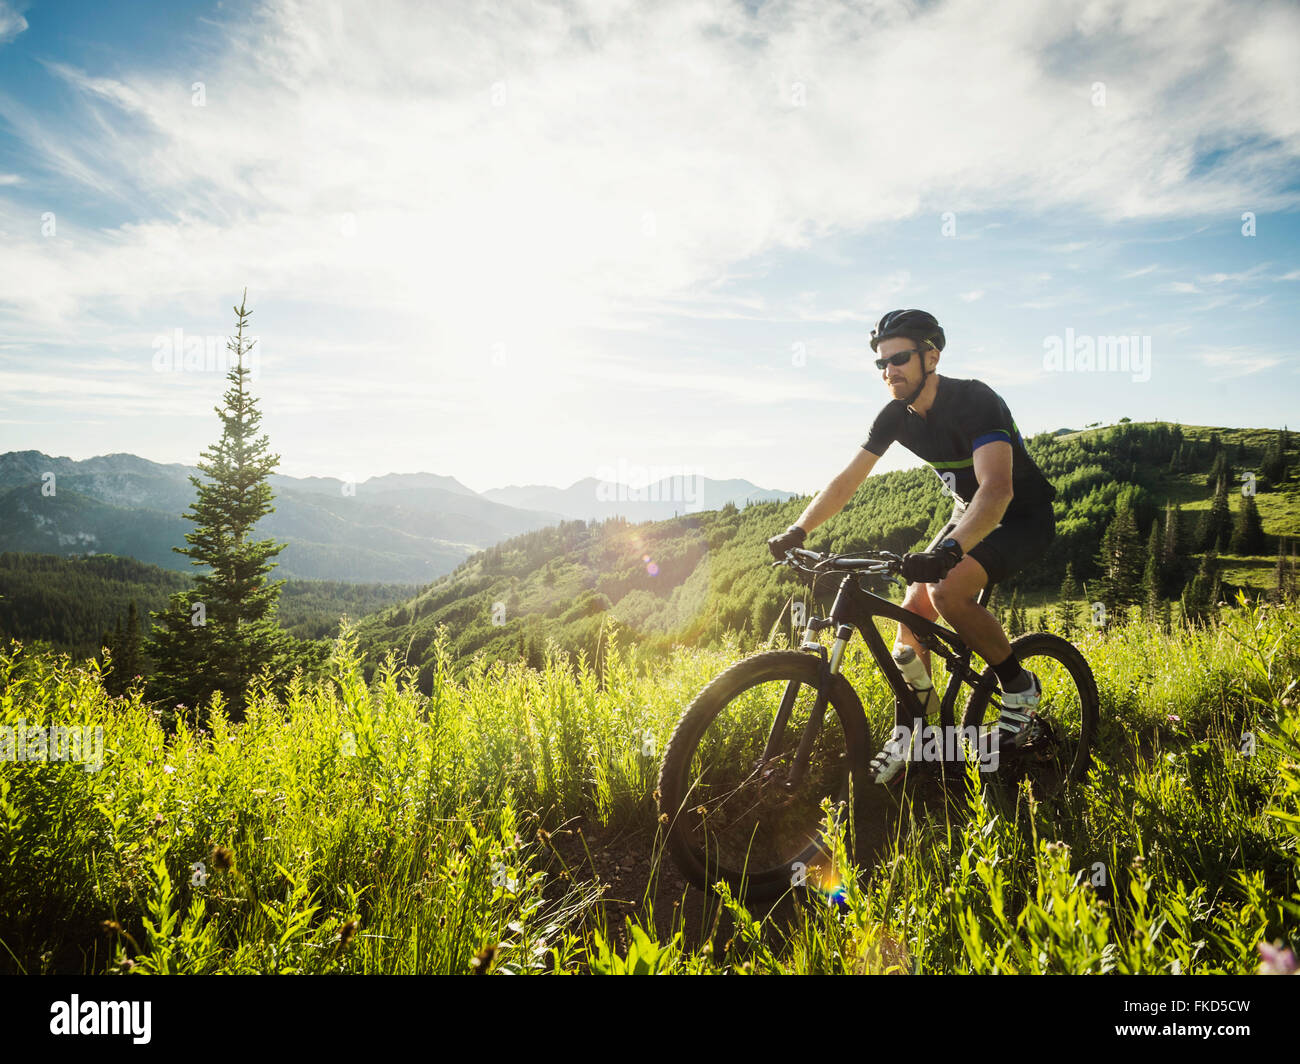 Man during bicycle trip in mountain scenery - Stock Image